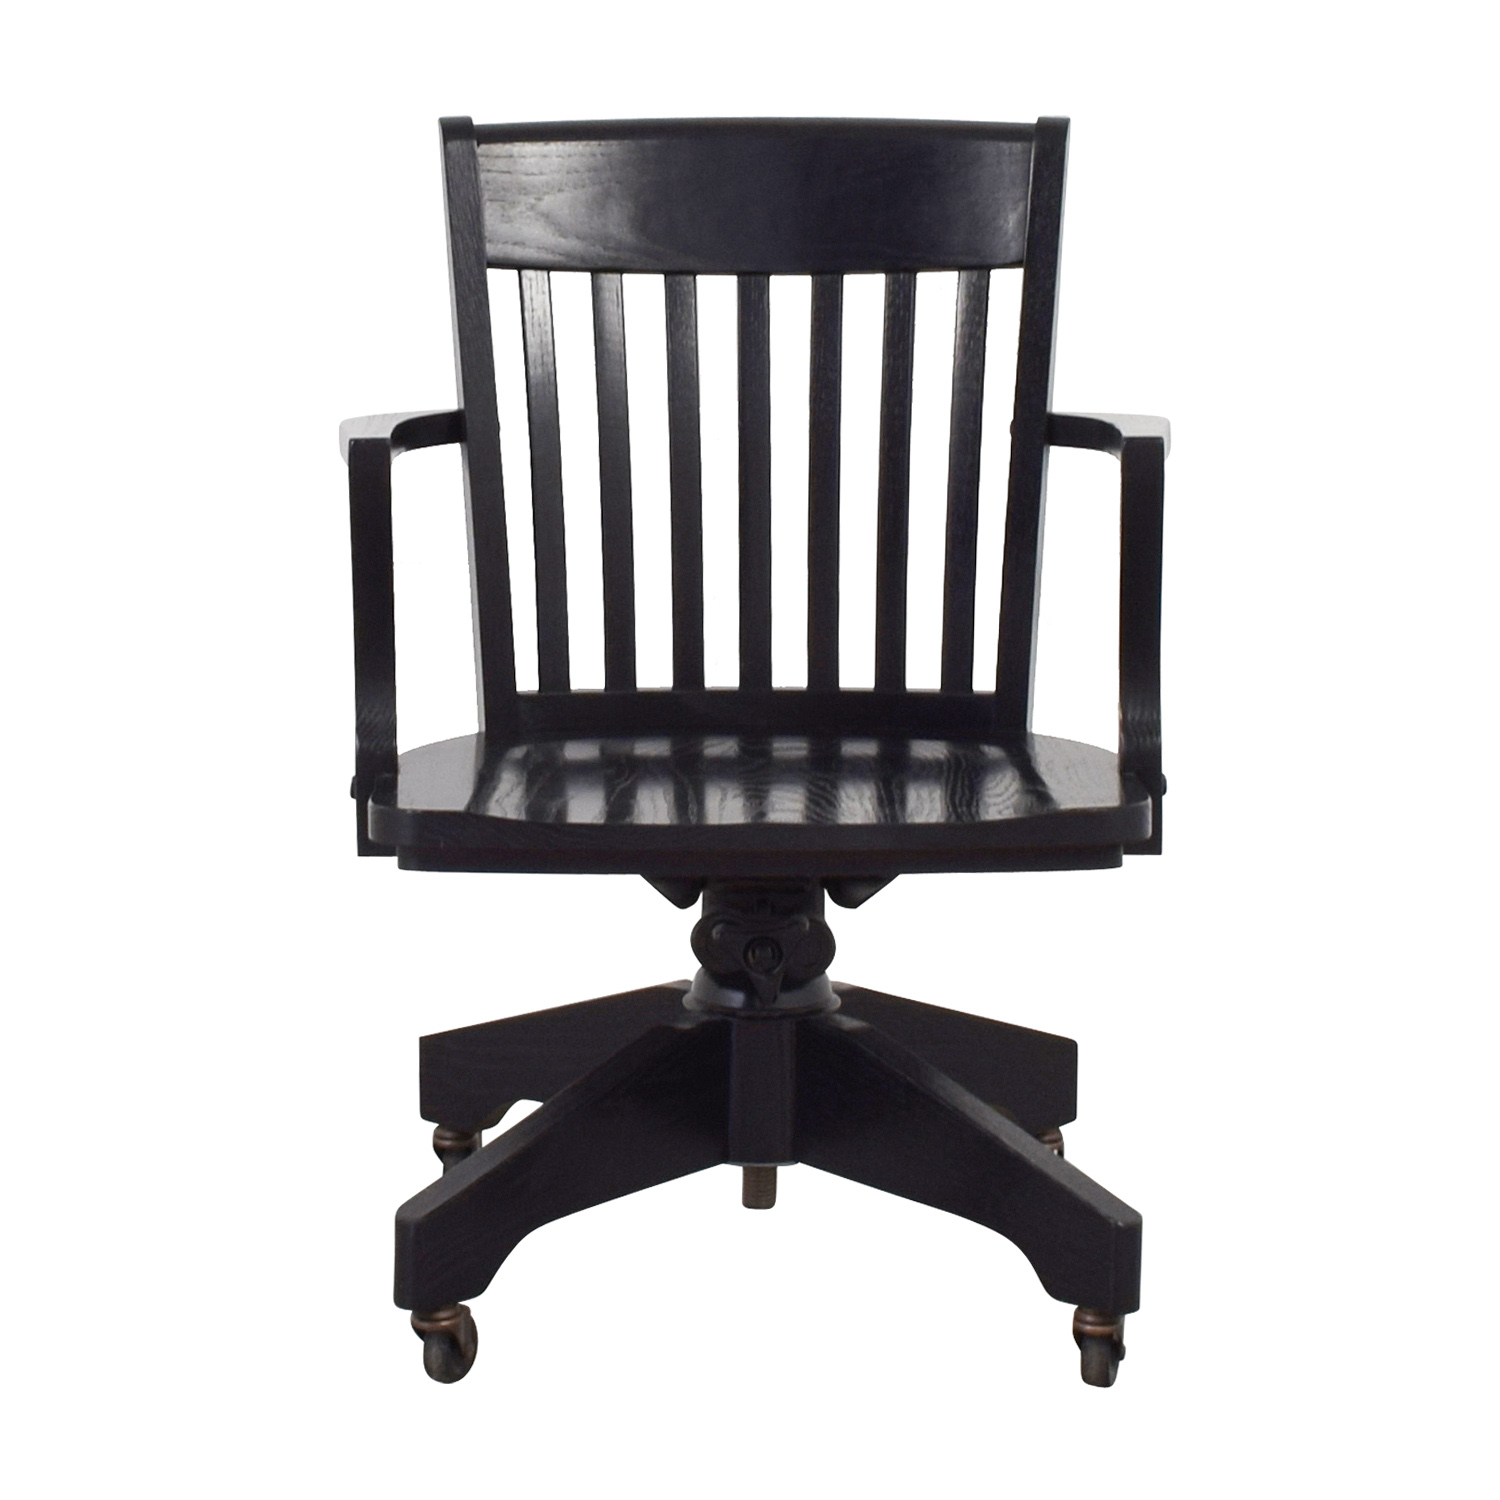 Image of: 90 Off Pottery Barn Pottery Barn Black Swivel Desk Chair Chairs